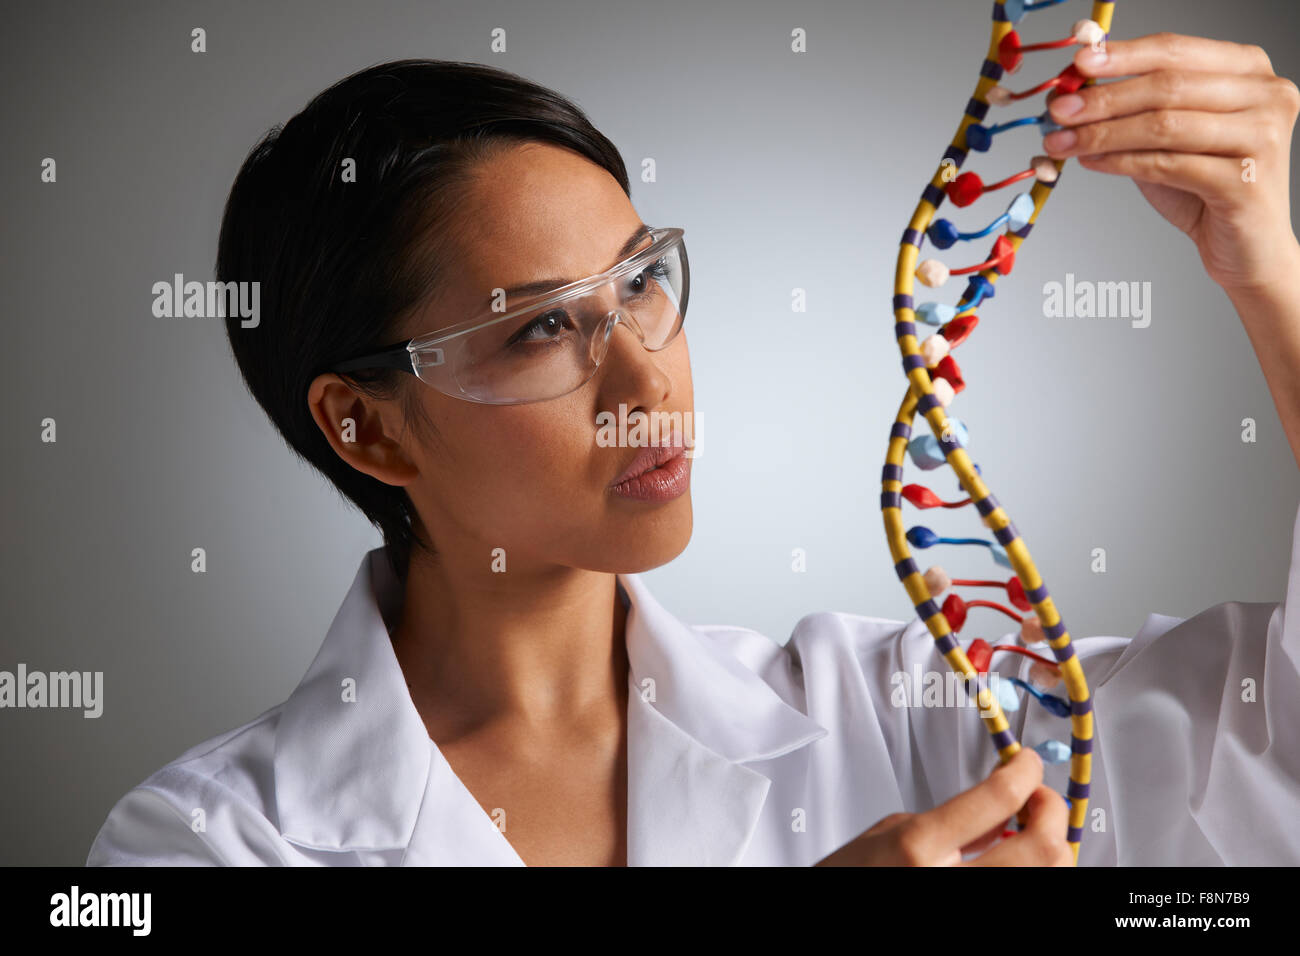 Female Scientist Studying Molecular Model In Shape Of Helix - Stock Image